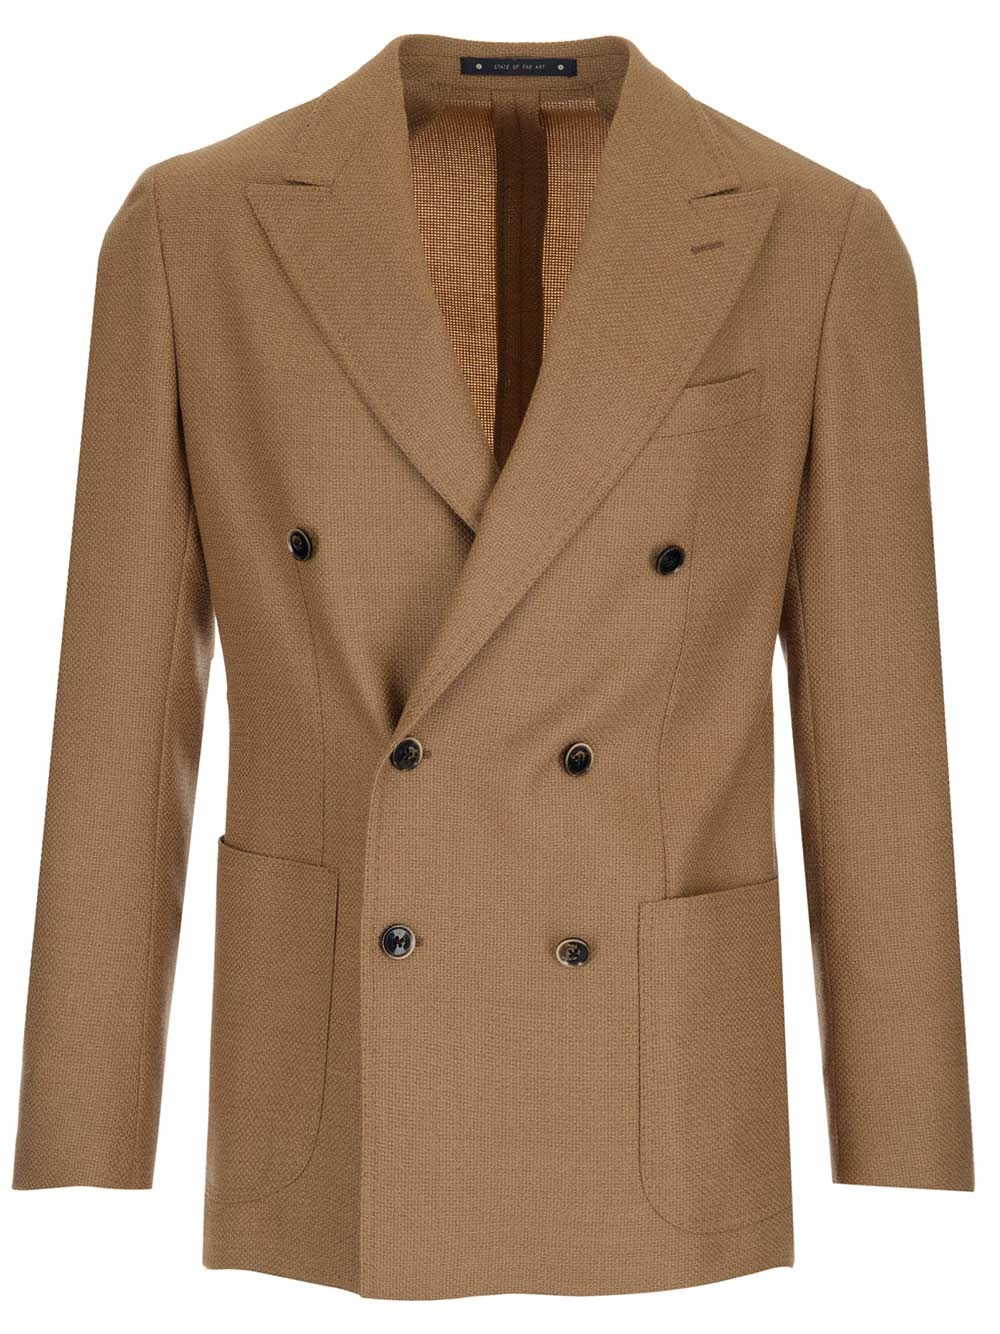 AL DUCA D'AOSTA 1902 Double-Breasted Tailored Jacket